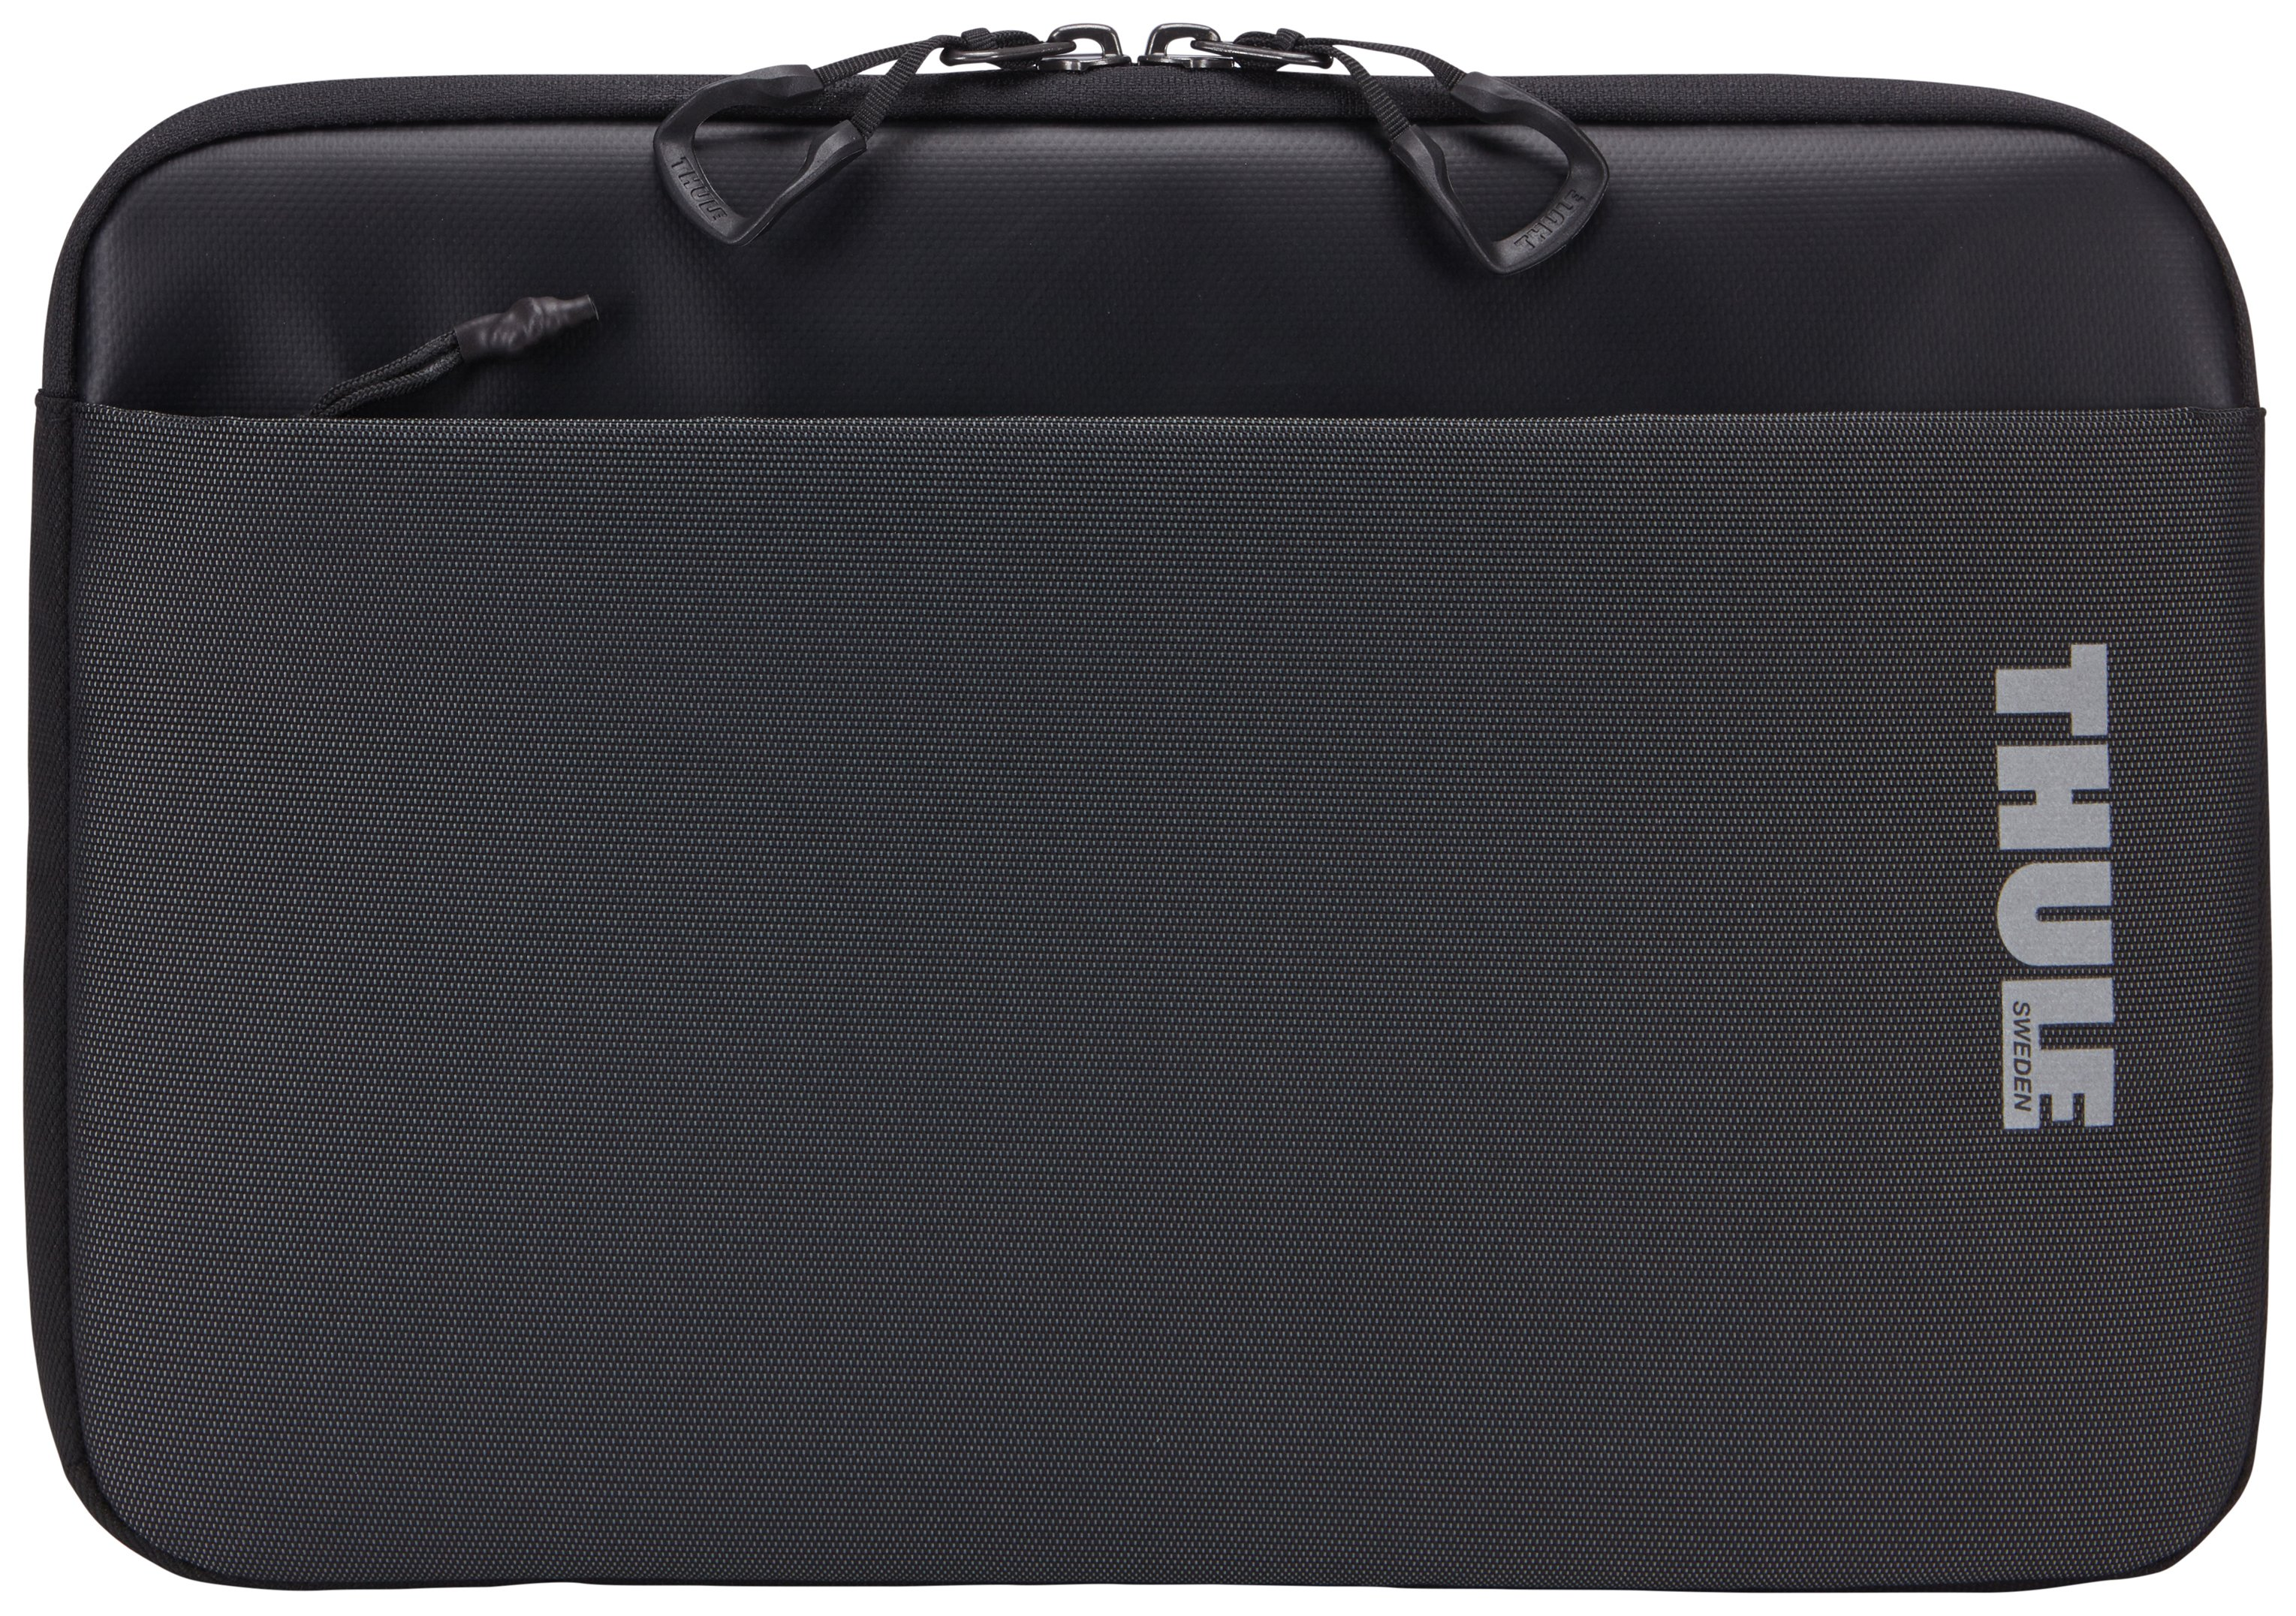 Thule Subterra 11 inch Macbook Sleeve - Black.